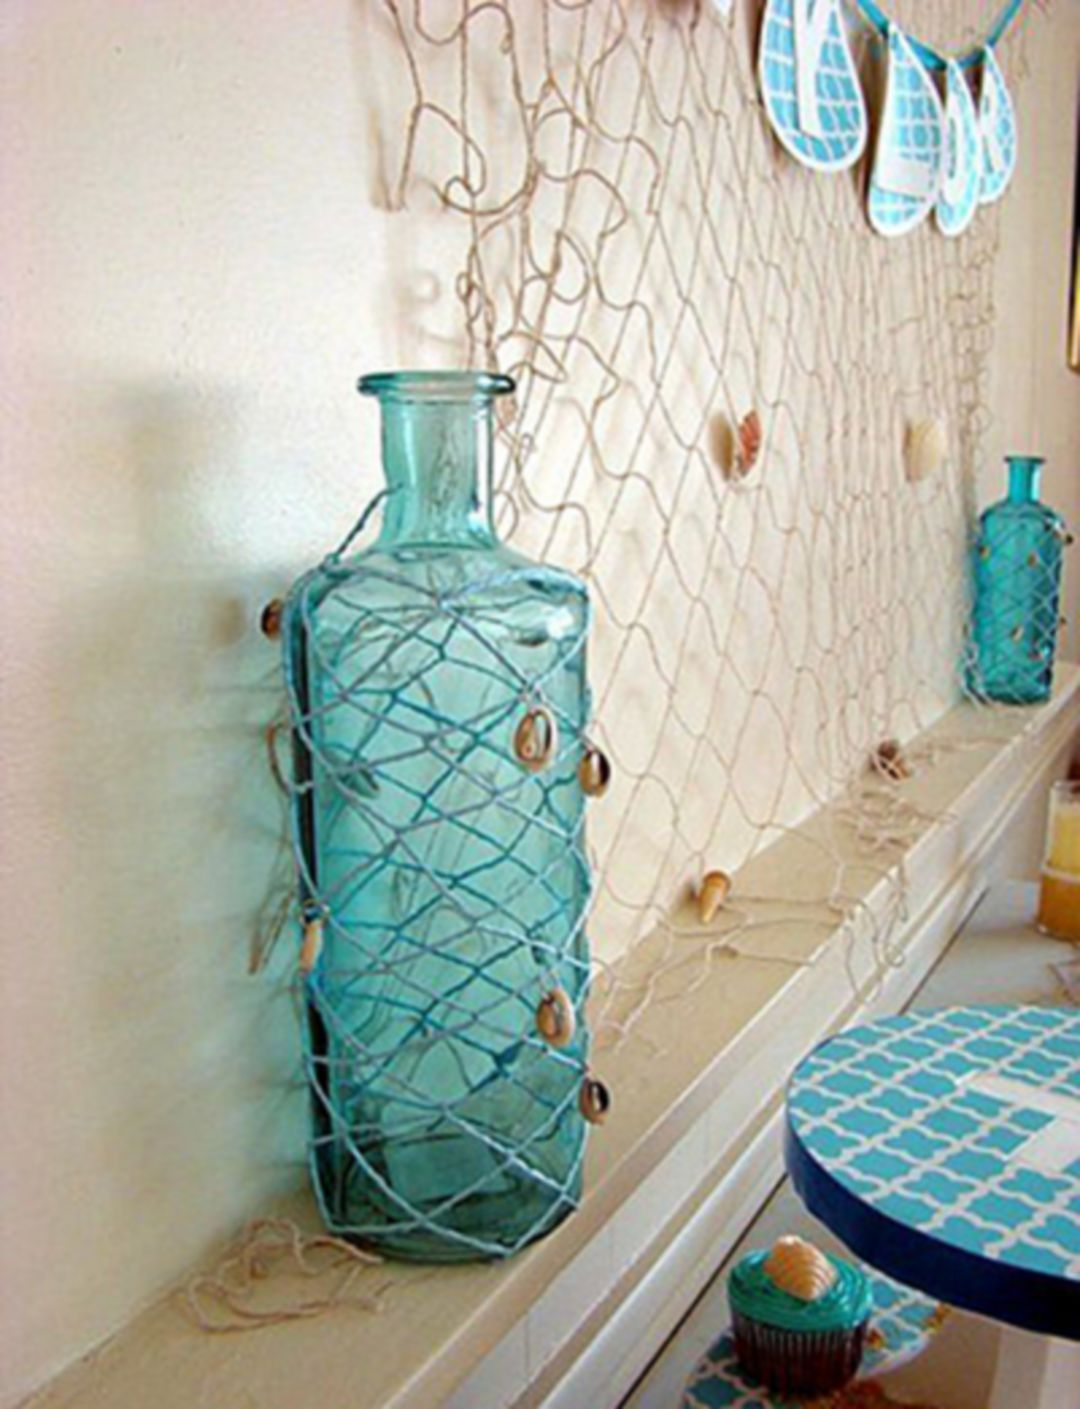 15 Awesome Bathroom Decorating Ideas With Diy Mermaid Decor Roomy Beach Bathroom Decor Beach Theme Bathroom Sea Bathroom